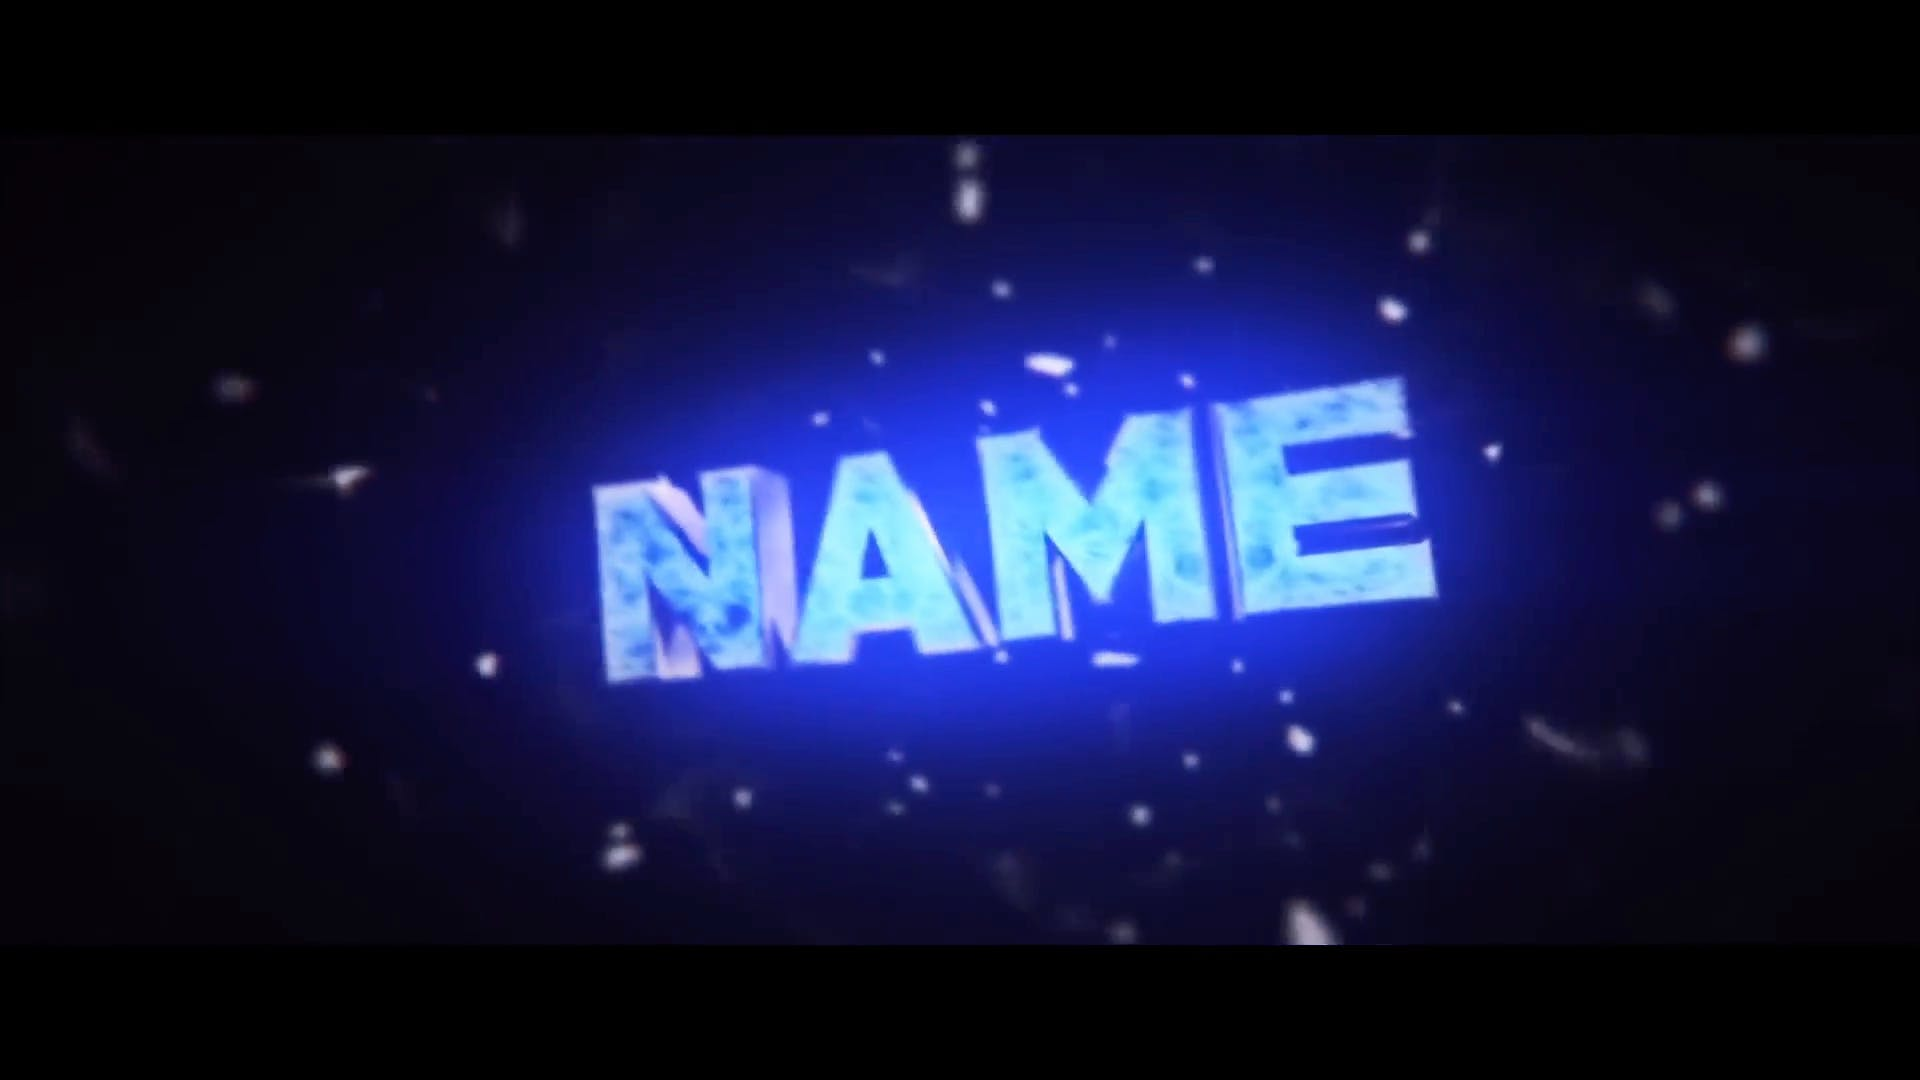 Blue Fracture Cinema 4D After Effects Intro Template FREE DOWNLOAD